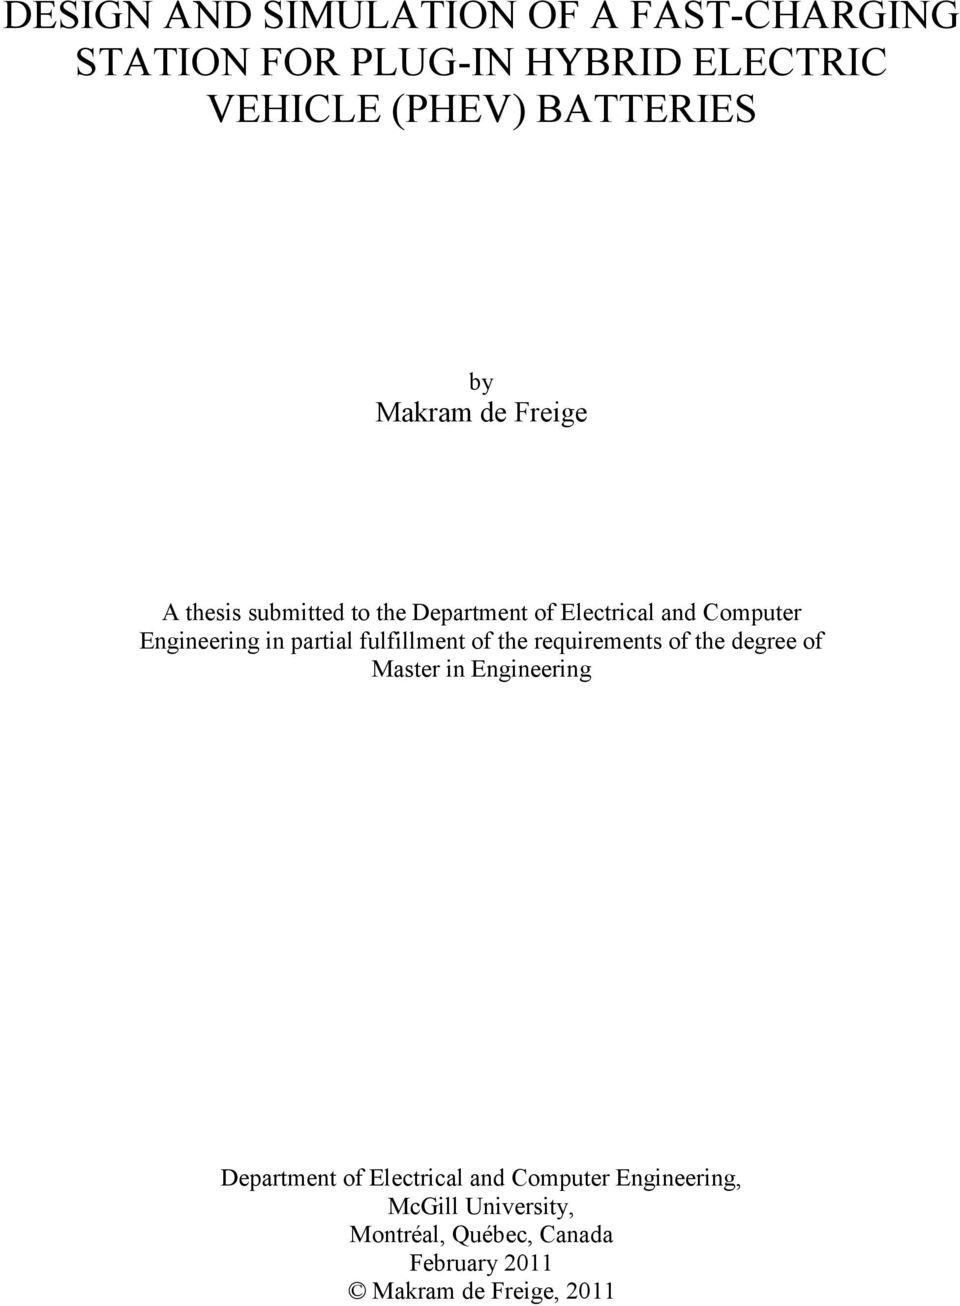 Design And Simulation Of A Fast Charging Station For Plug In Hybrid Solar Cell Powered Supercapacitor Charger With Strange Output Voltage Partial Fulfillment The Requirements Degree Master Engineering Department